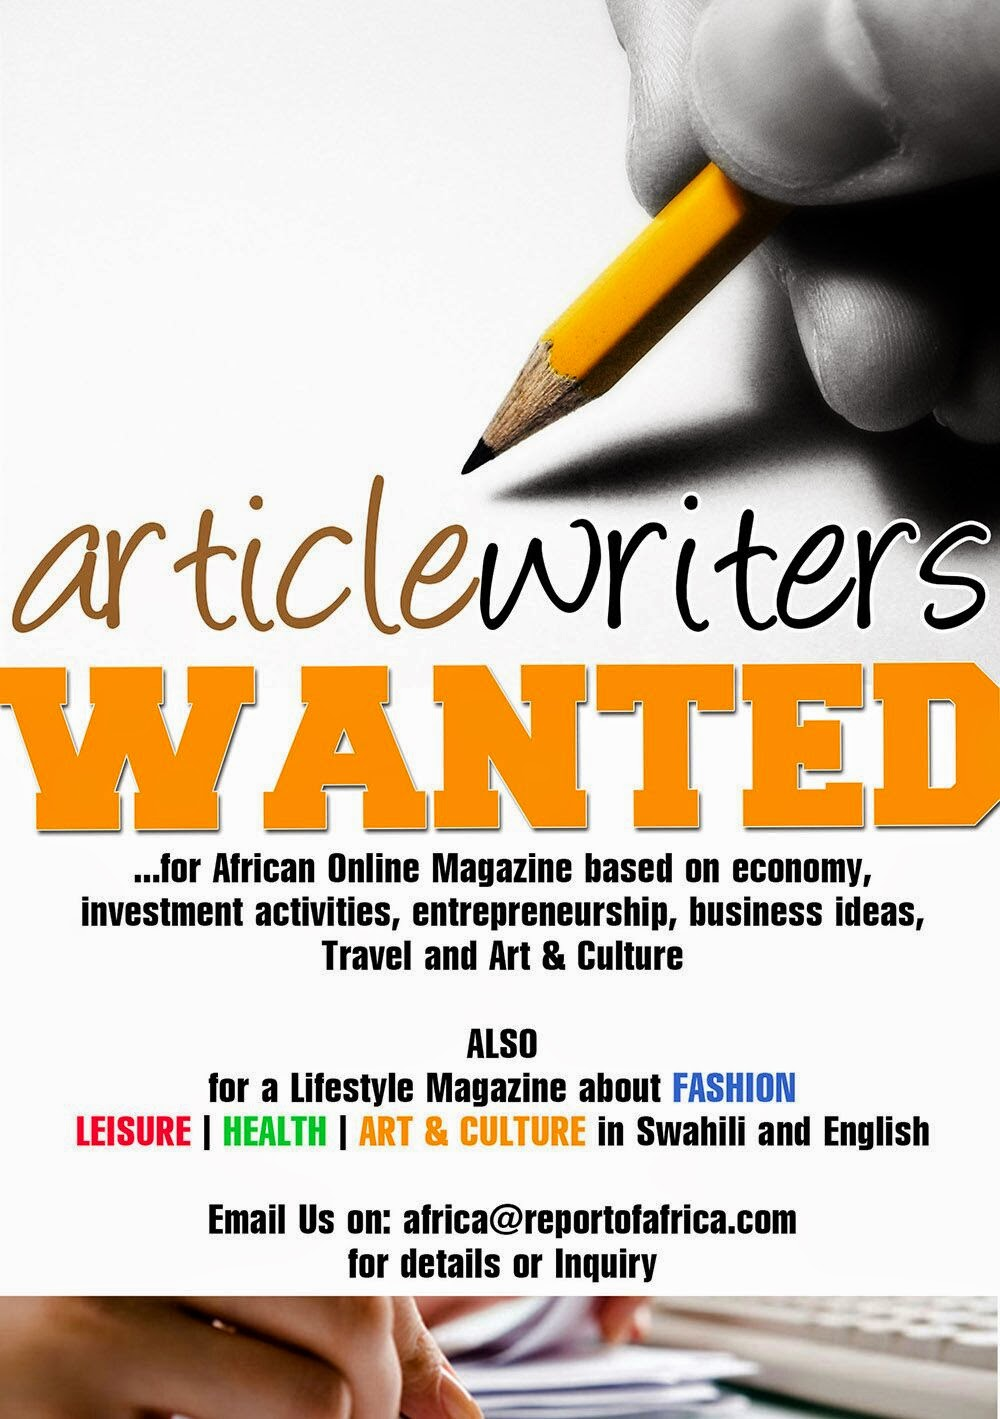 ARE YOU A PASSIONATE WRITER TO ANY OF THE BELOW HEADINGS? #INQUIRENOW #REPORT2AFRICA #ONLINEMAGAZIN